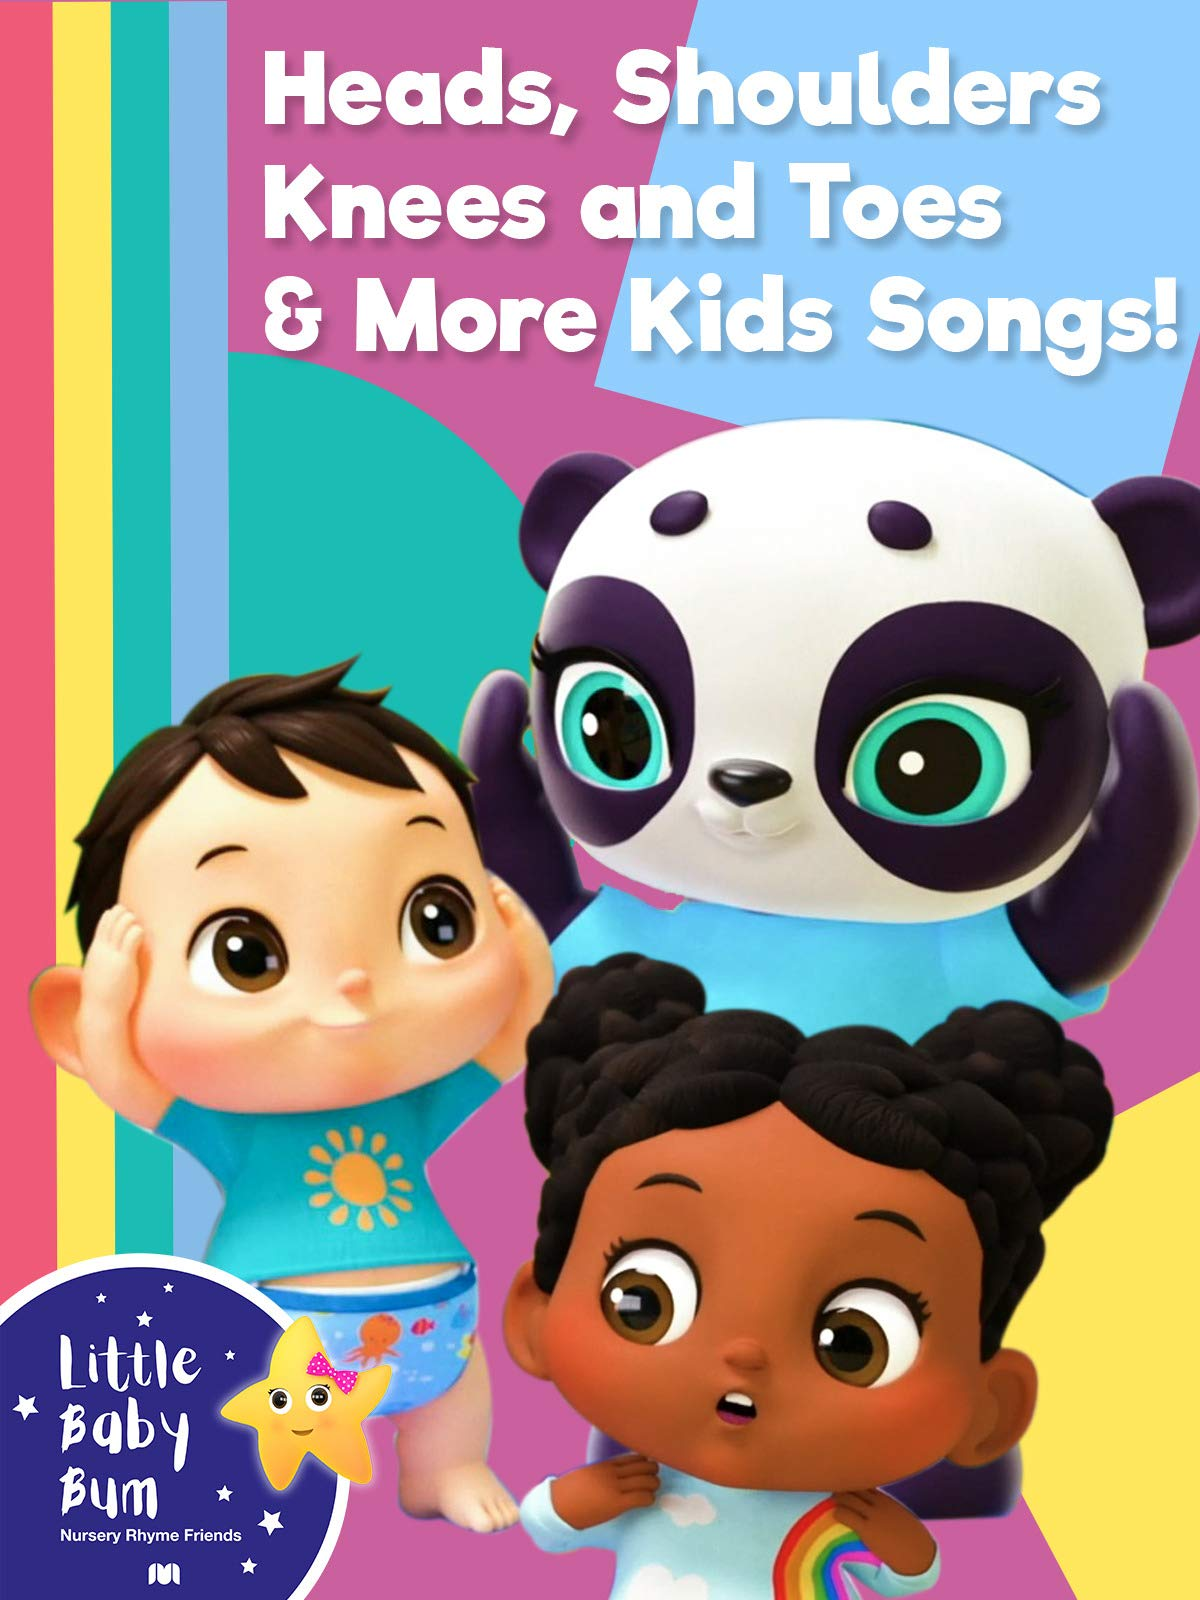 Little Baby Bum - Heads, Shoulders, Knees and Toes And More Kids Songs